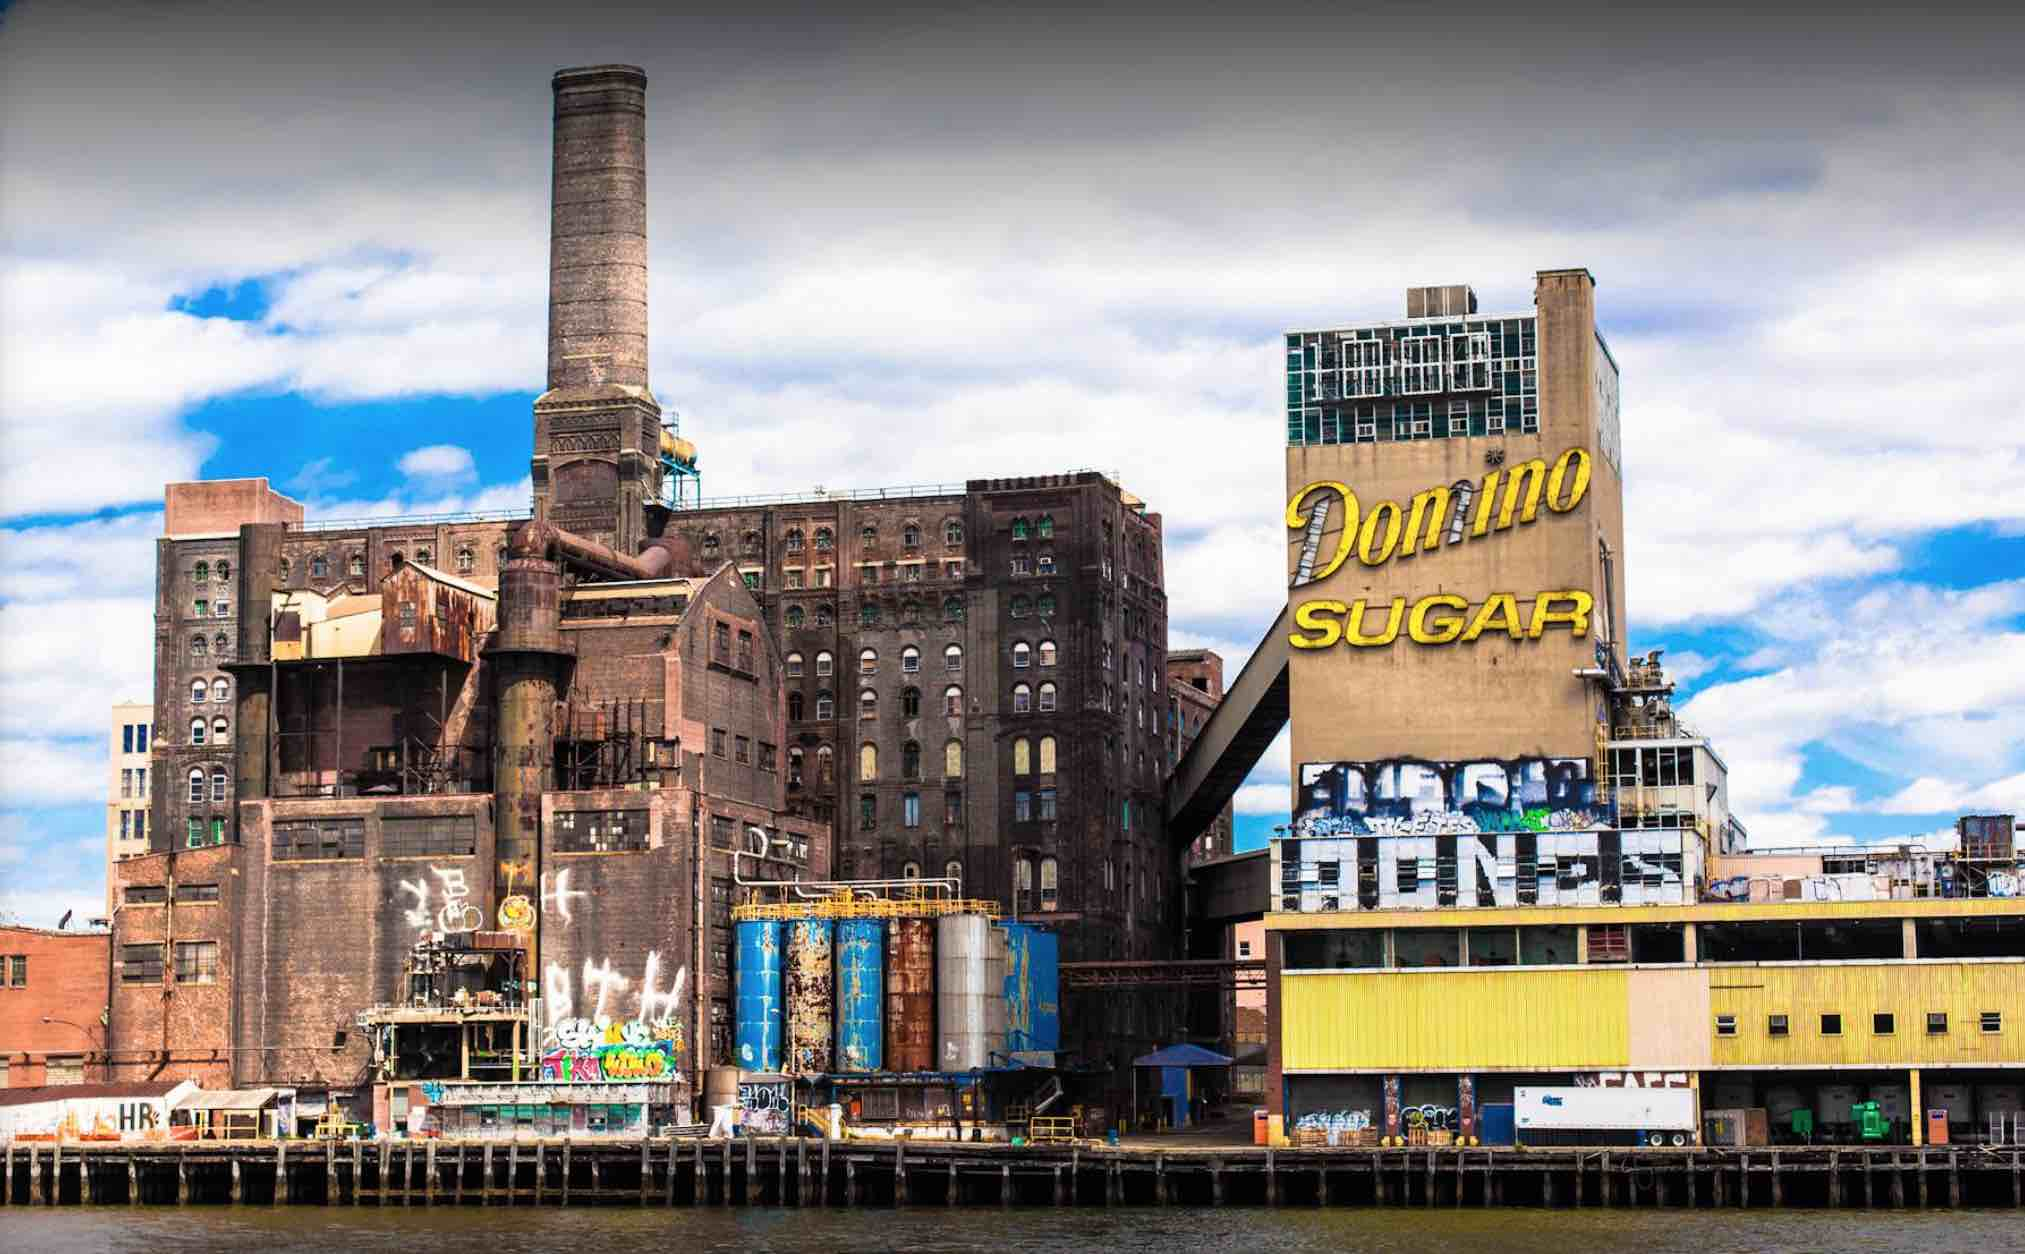 The Domino Sugar Refinery, in Williamsburg, Brooklyn – Refining operations stopped in 2004